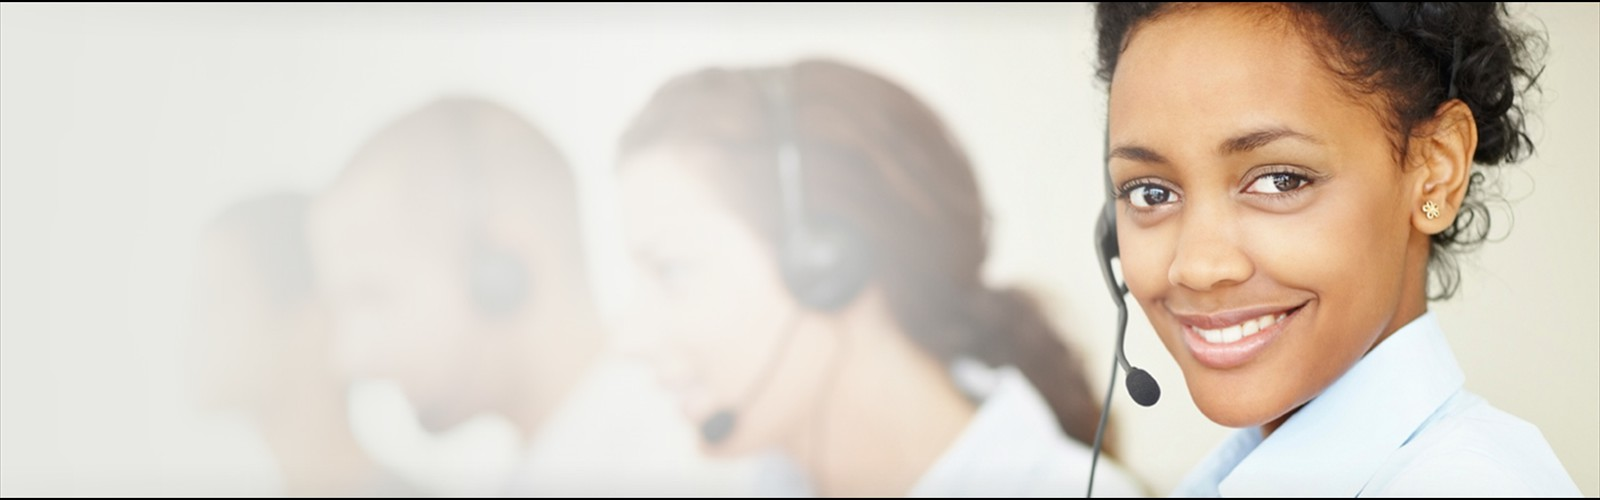 Free Call-Center Referals, Pre-Qualified For Your Needs